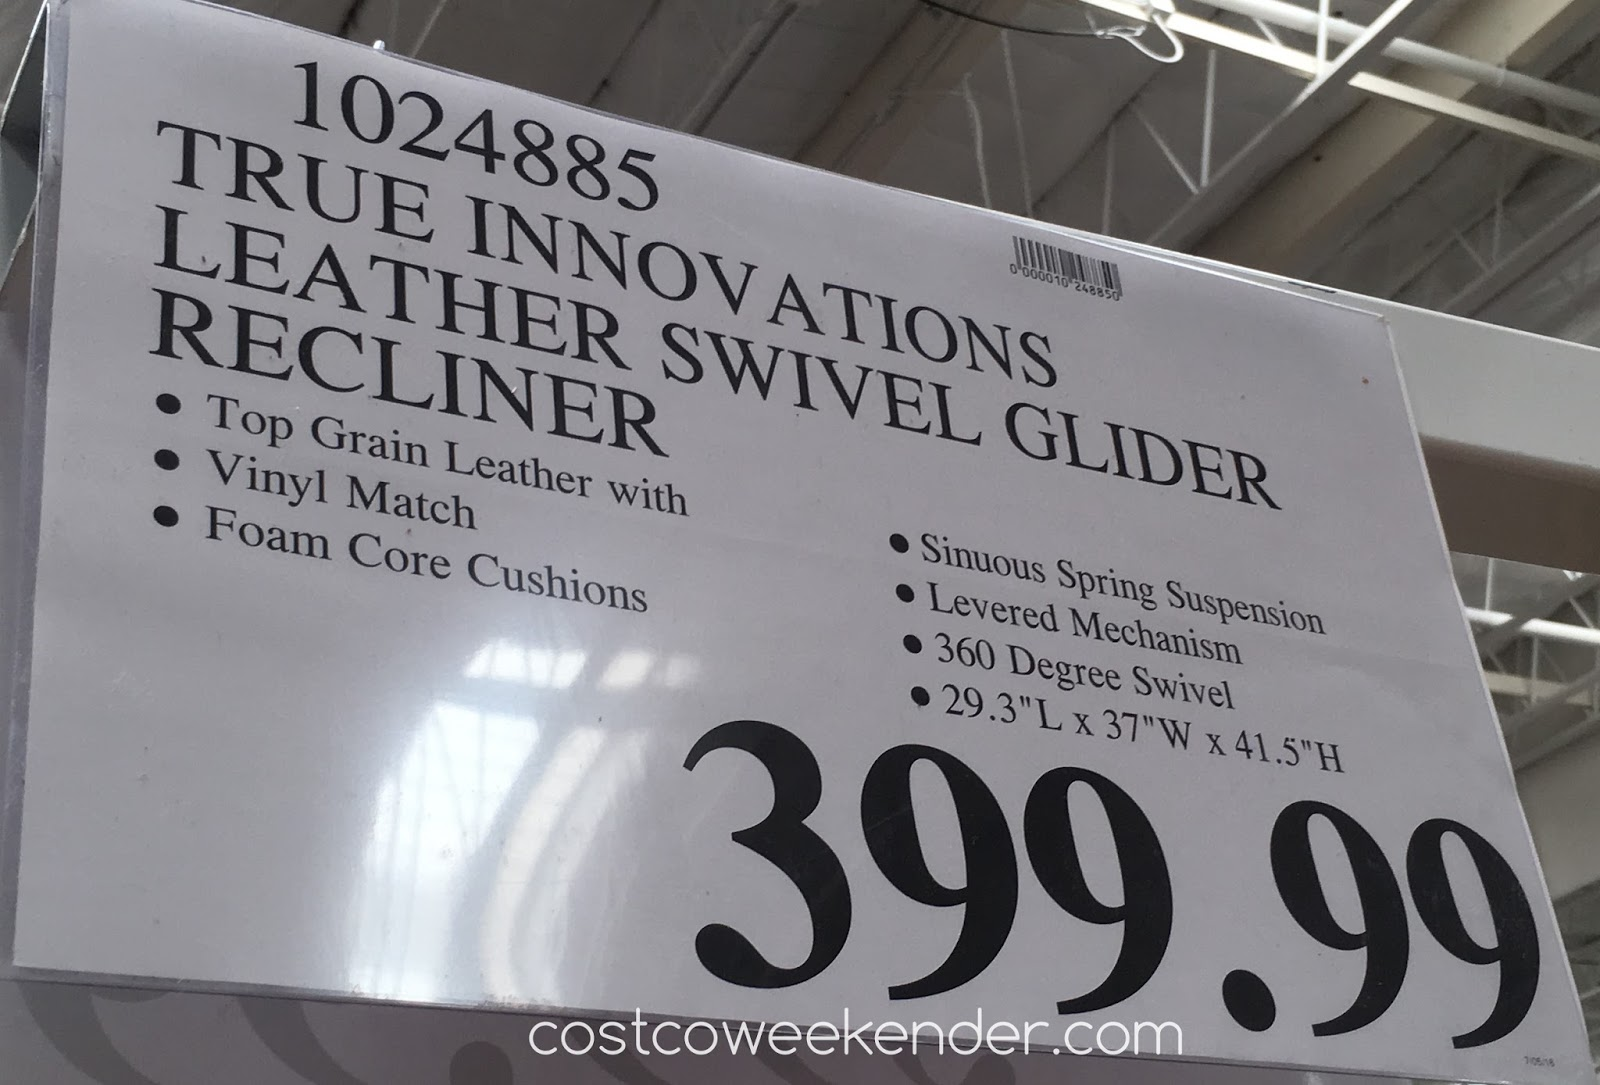 Deal for the True Innovations Leather Glider Recliner Chair at Costco